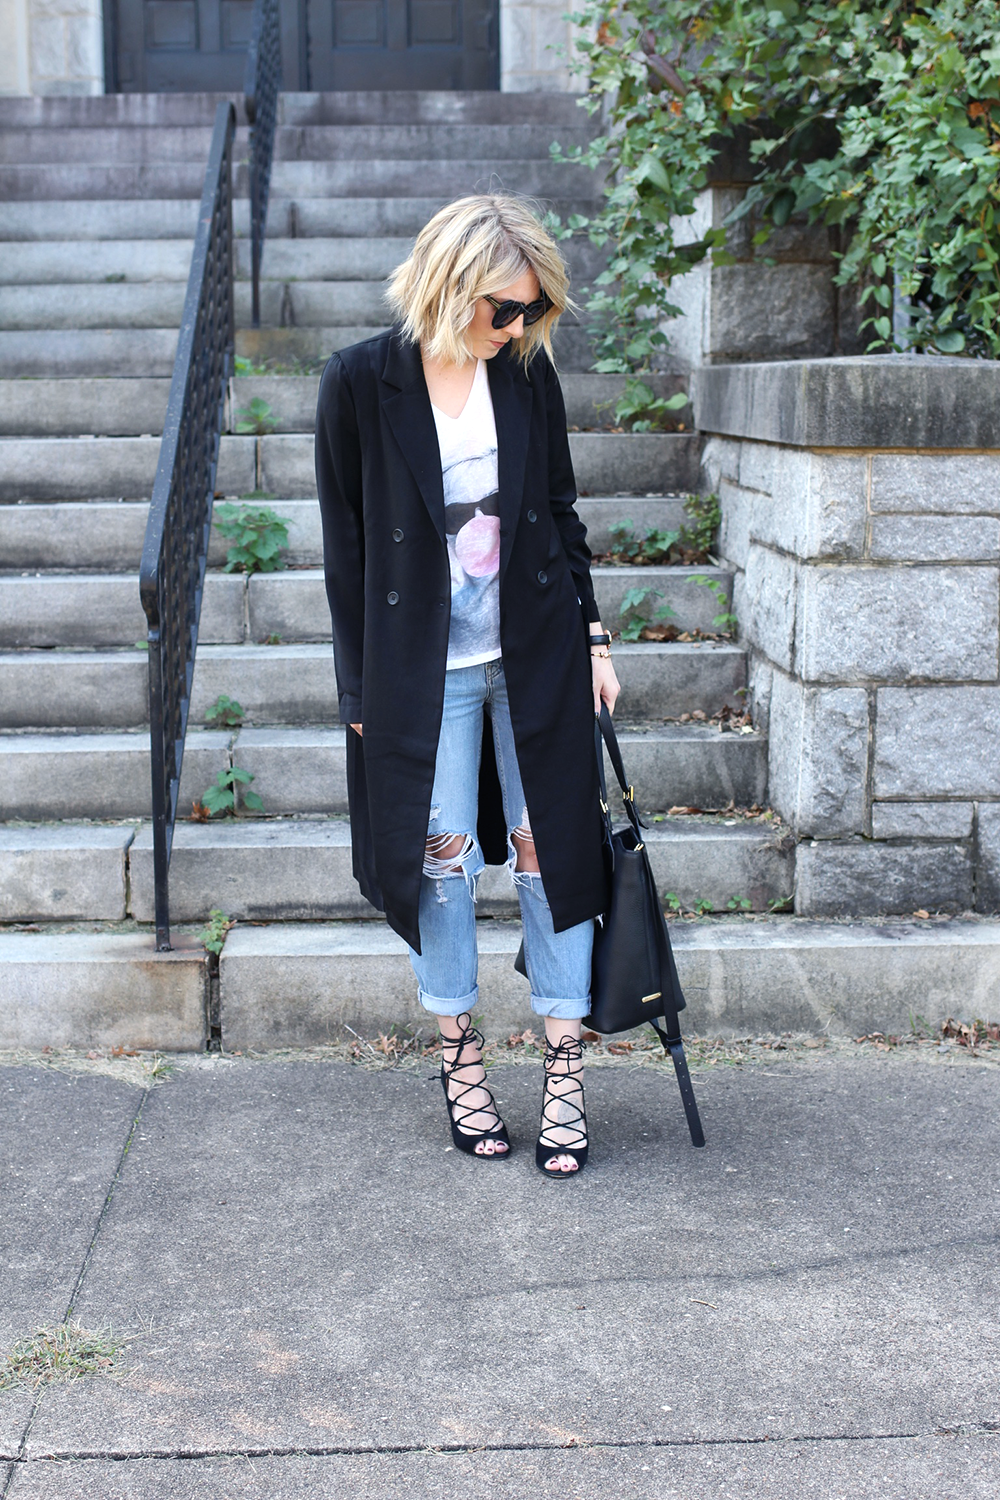 Minimalistic Outfit, Topshop Denim, Ripped Denim, Black Trench Coat